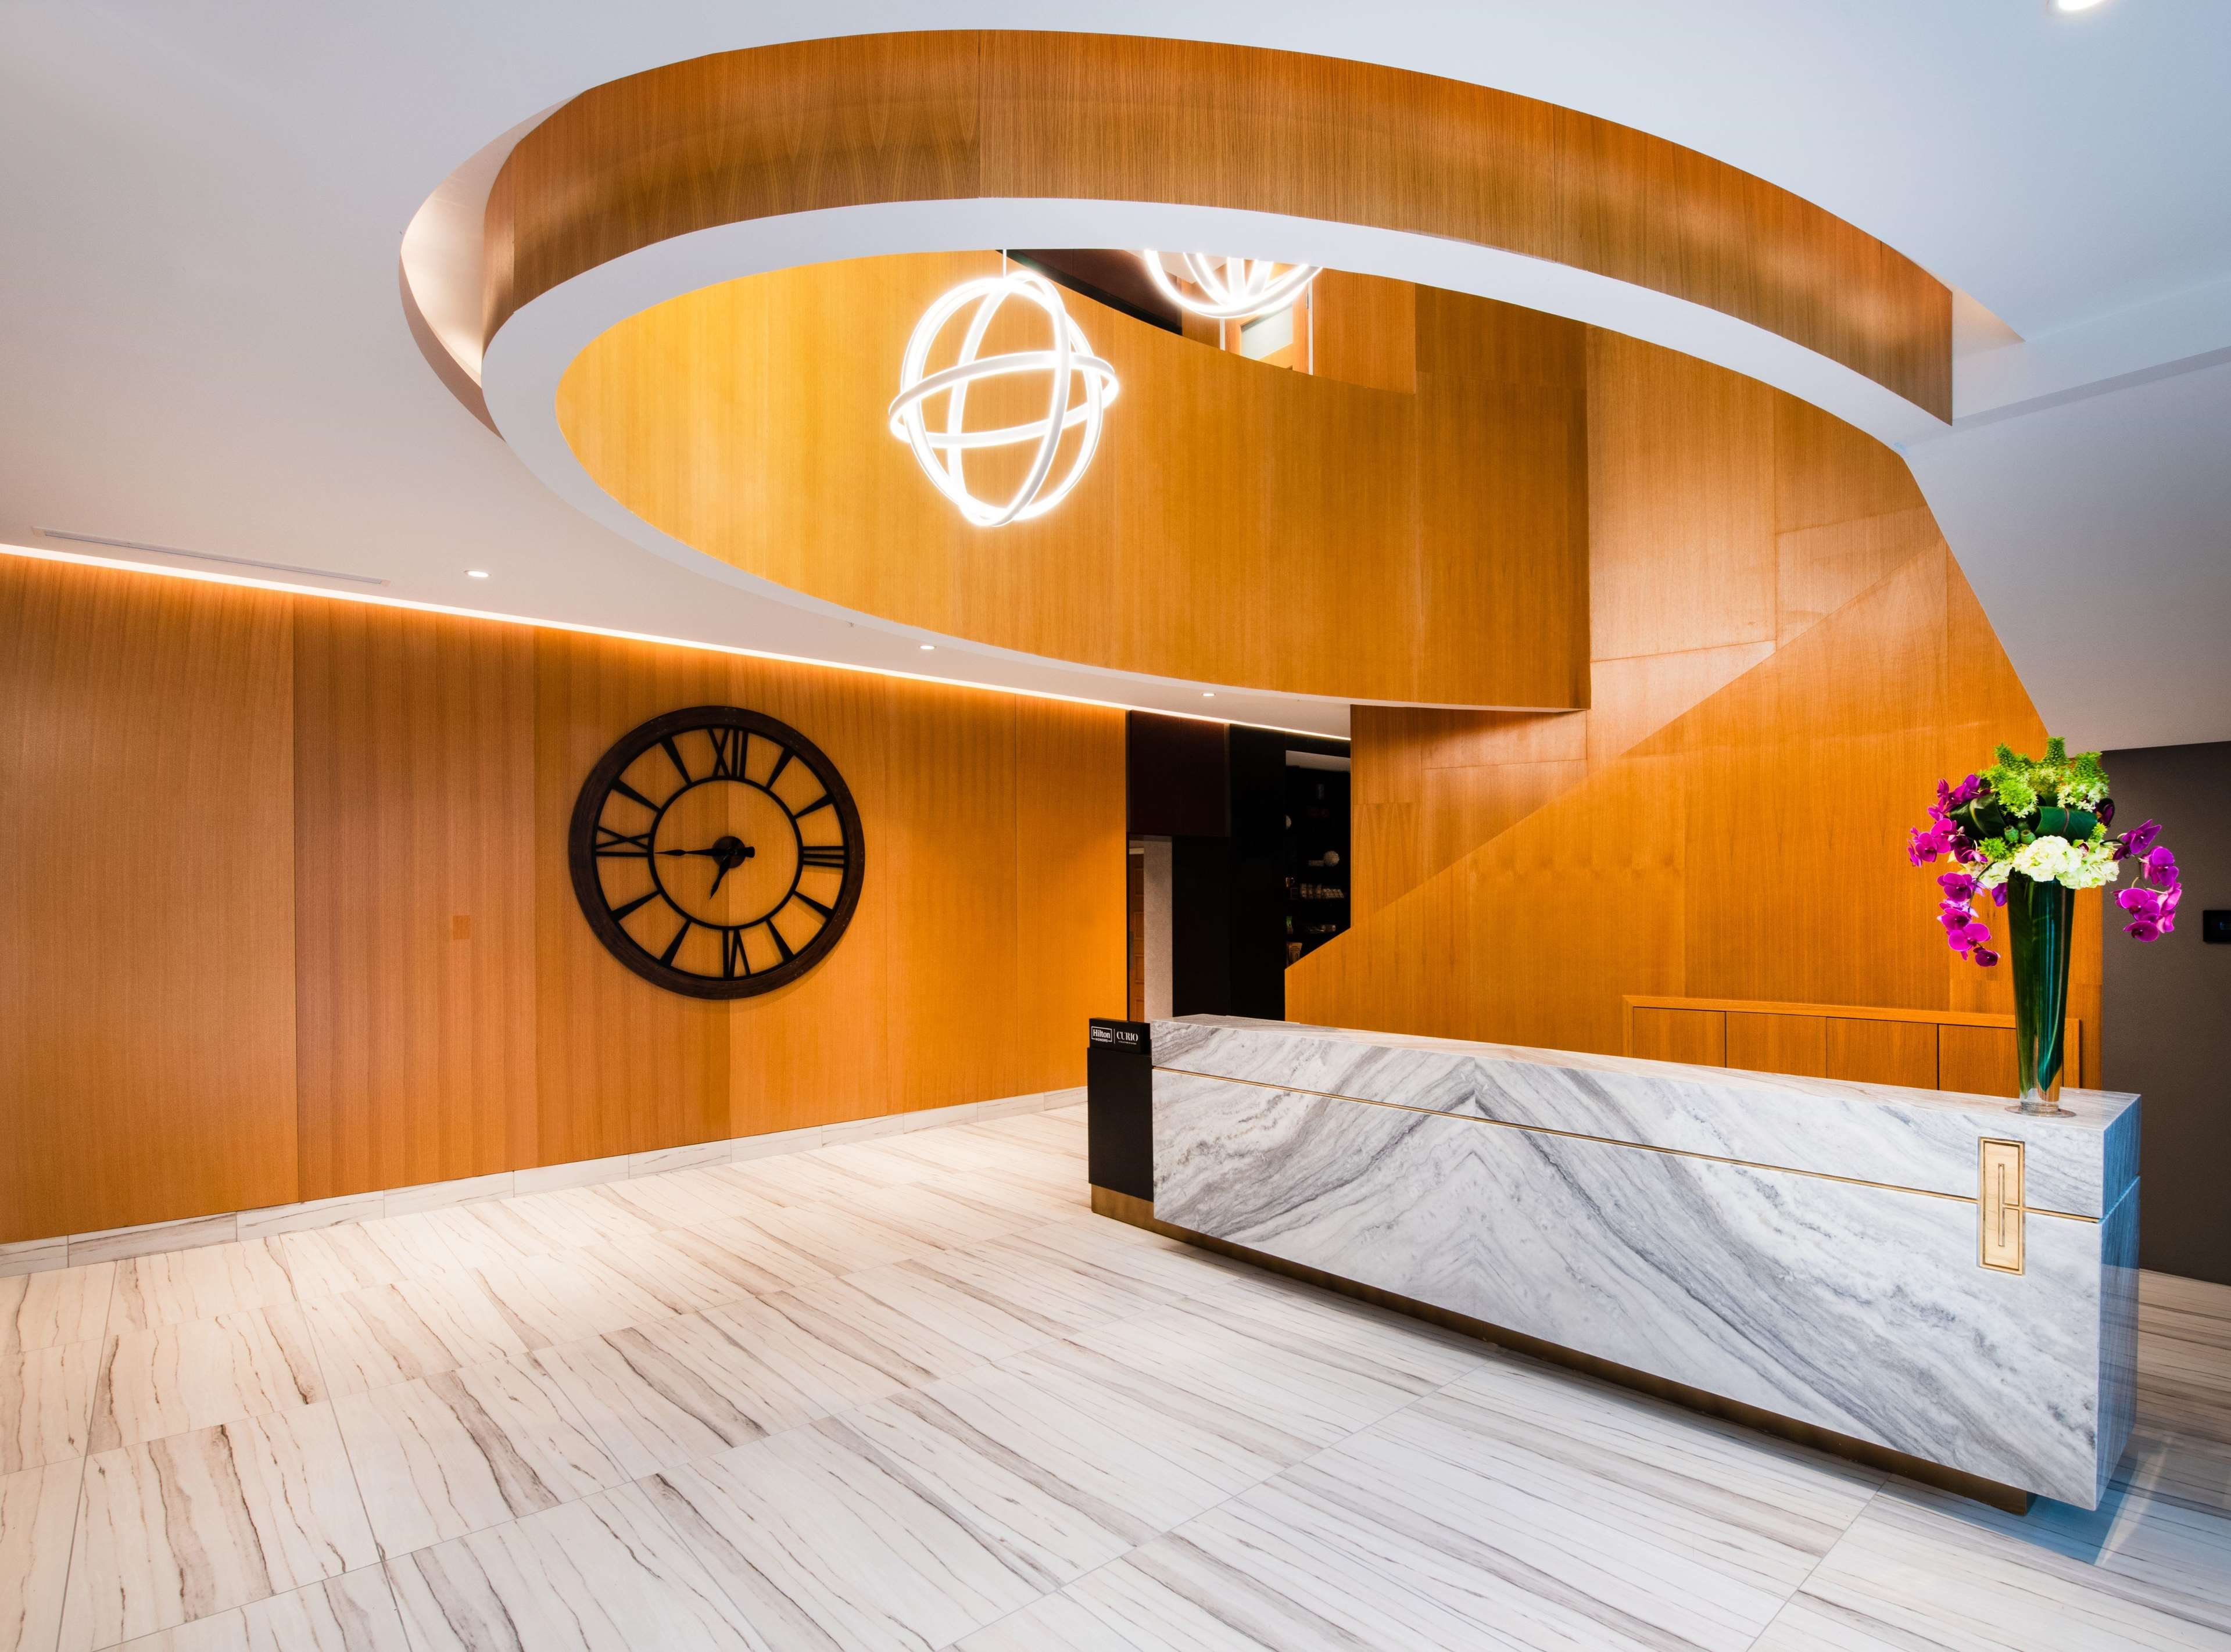 The Charter Hotel Seattle, Curio Collection by Hilton image 0